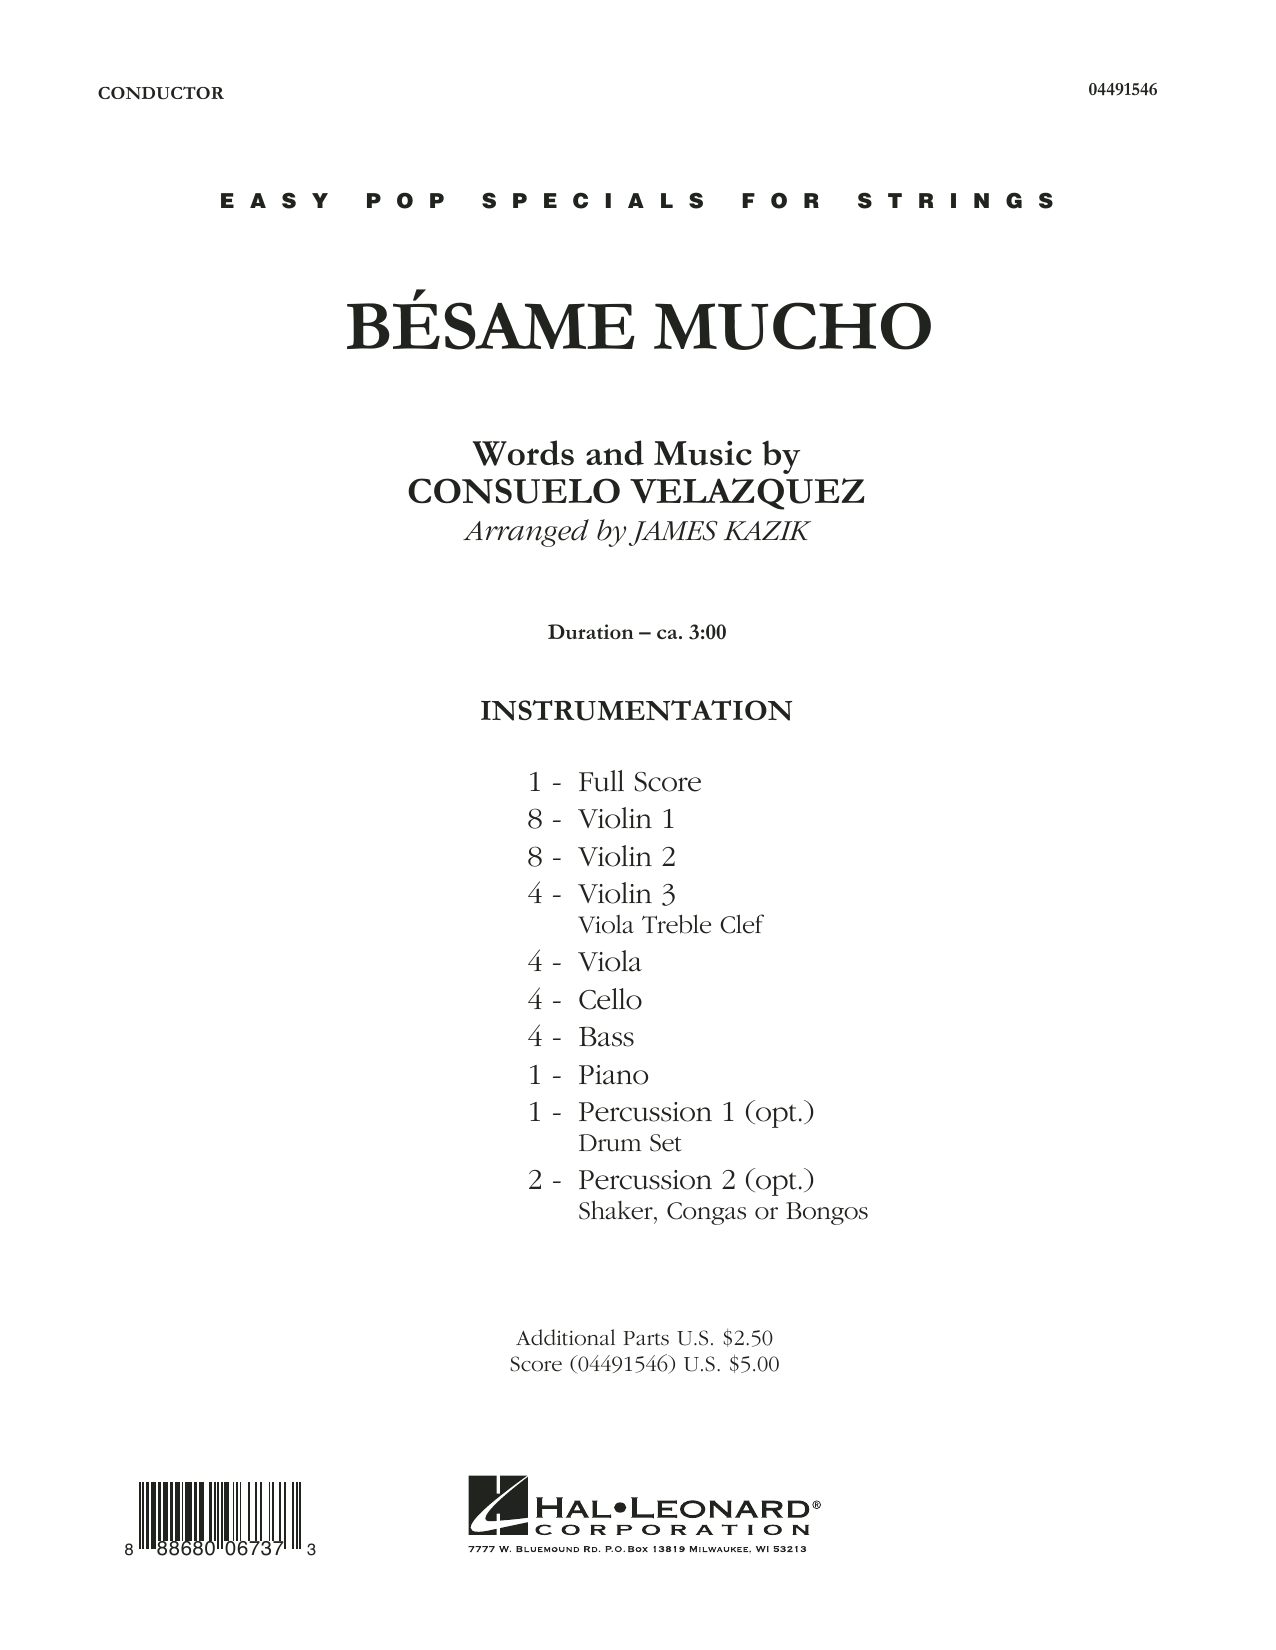 Besame Mucho (COMPLETE) sheet music for orchestra by Consuelo Velazquez and James Kazik. Score Image Preview.